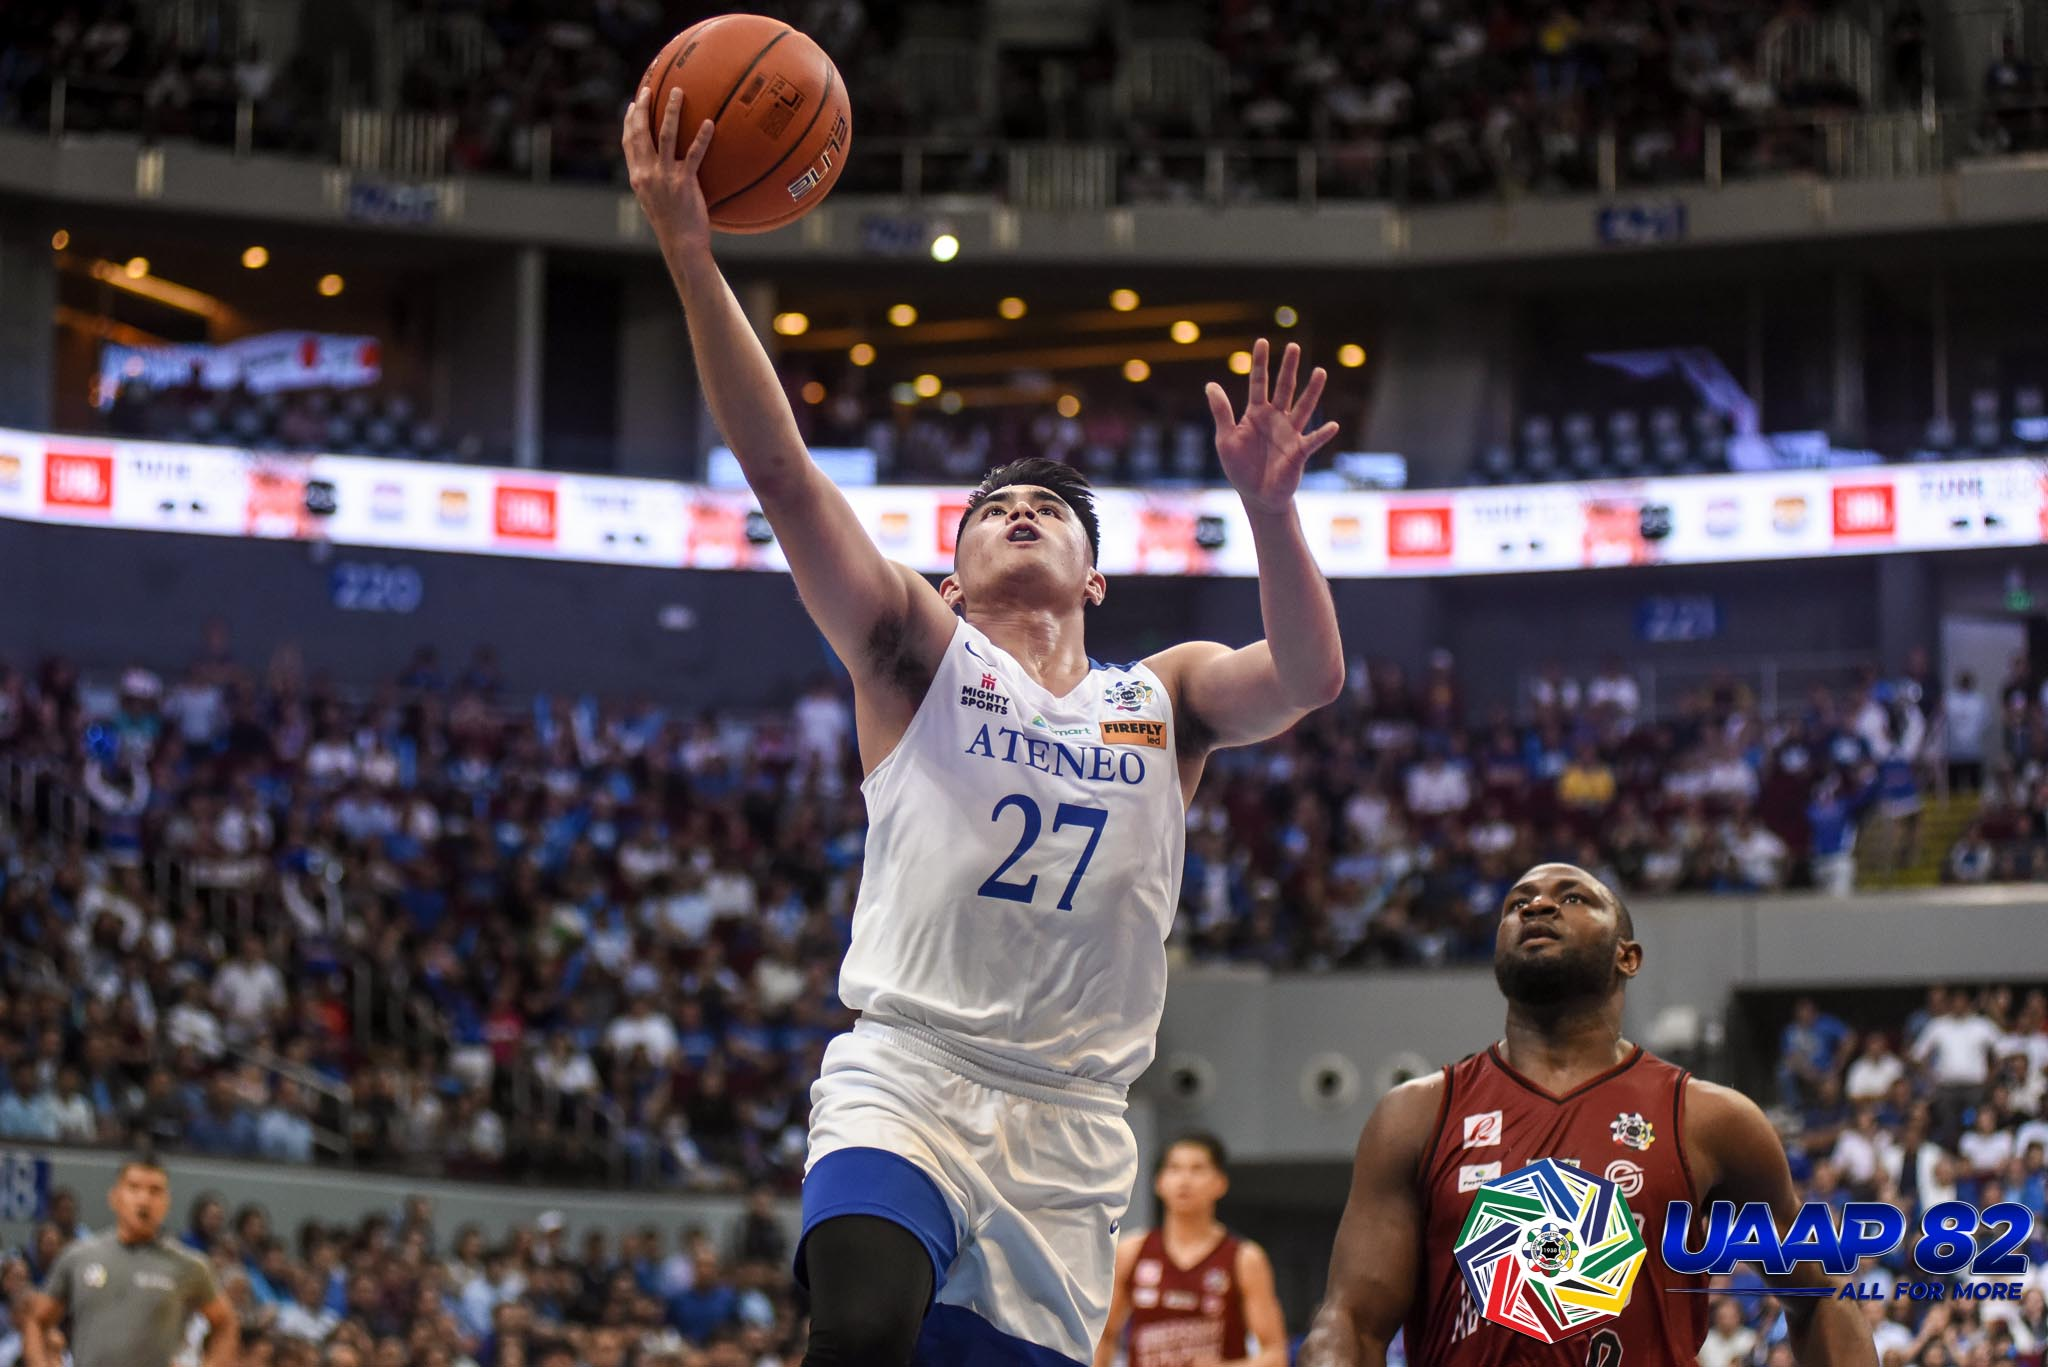 Tiebreaker Times Ateneo Blue Eagles overwhelm UP, complete sweep to book Finals trip ADMU Basketball News UAAP UP  UP Men's Basketball UAAP Season 82 Men's Basketball UAAP Season 82 Tab Baldwin SJ Belangel Bo Perasol Ateneo Men's Basketball Angelo Kouame